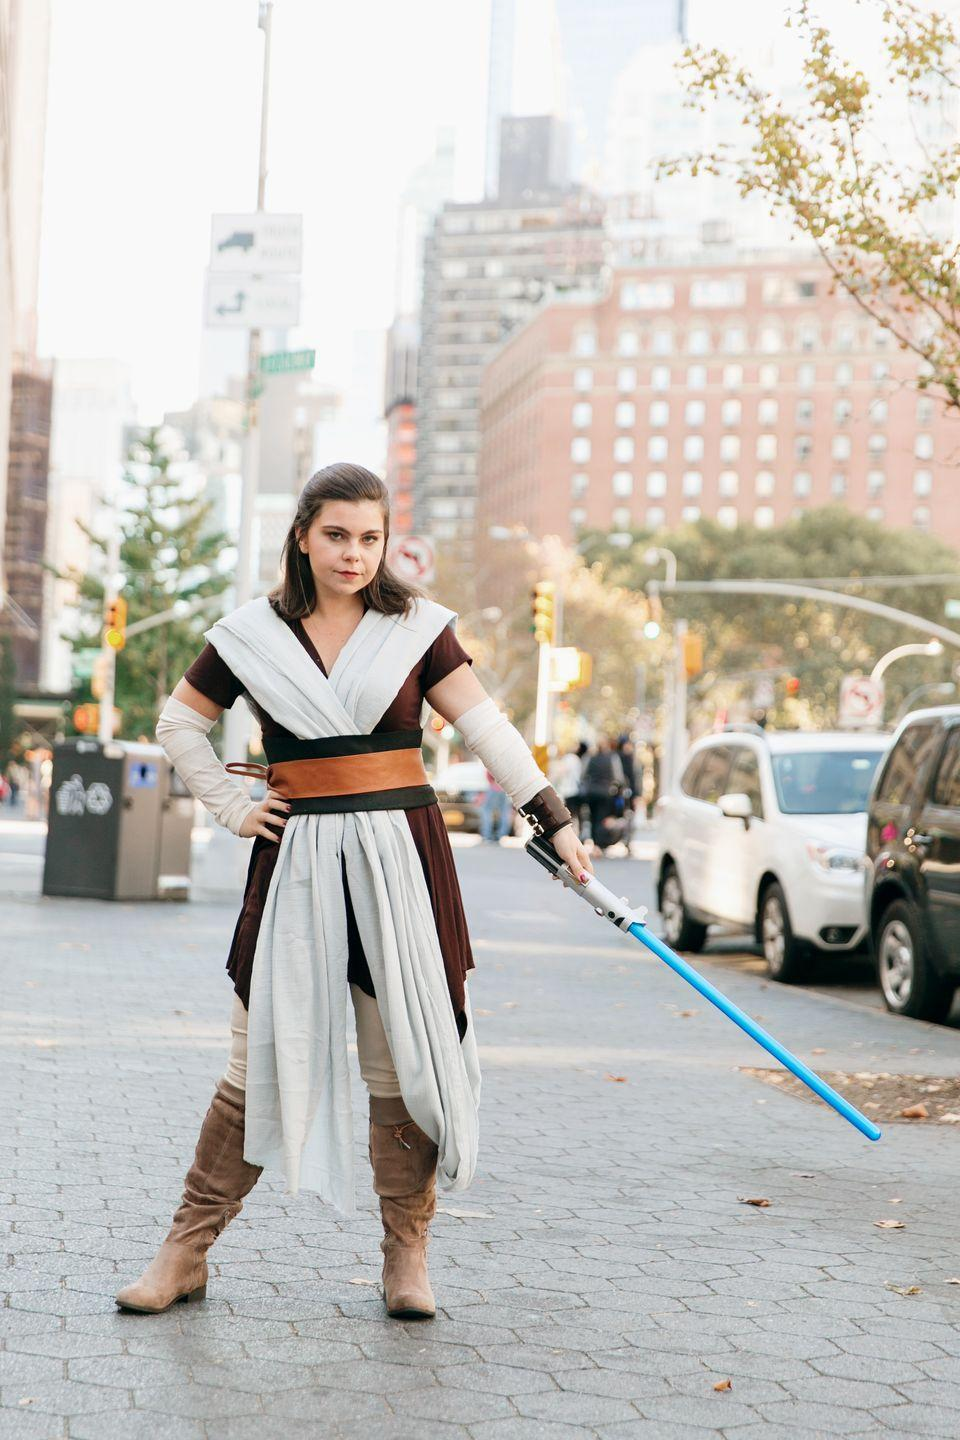 """<p><em>Star Wars</em> fans, we hope you're sitting down for this news: You too can transform into Rey this year. This DIY costume requires nothing more than a bit of white fabric, which you can use to craft makeshift armbands, plus a lightsaber, a brown tunic, and a pair of slouchy riding boots. A brown belt ties it all together.</p><p><a class=""""link rapid-noclick-resp"""" href=""""https://www.amazon.com/Rubies-Costume-Obi-Wan-Kenobi-Accessory/dp/B00160GPMK/?tag=syn-yahoo-20&ascsubtag=%5Bartid%7C10050.g.4571%5Bsrc%7Cyahoo-us"""" rel=""""nofollow noopener"""" target=""""_blank"""" data-ylk=""""slk:SHOP LIGHT SABERS"""">SHOP LIGHT SABERS</a><br><br></p>"""